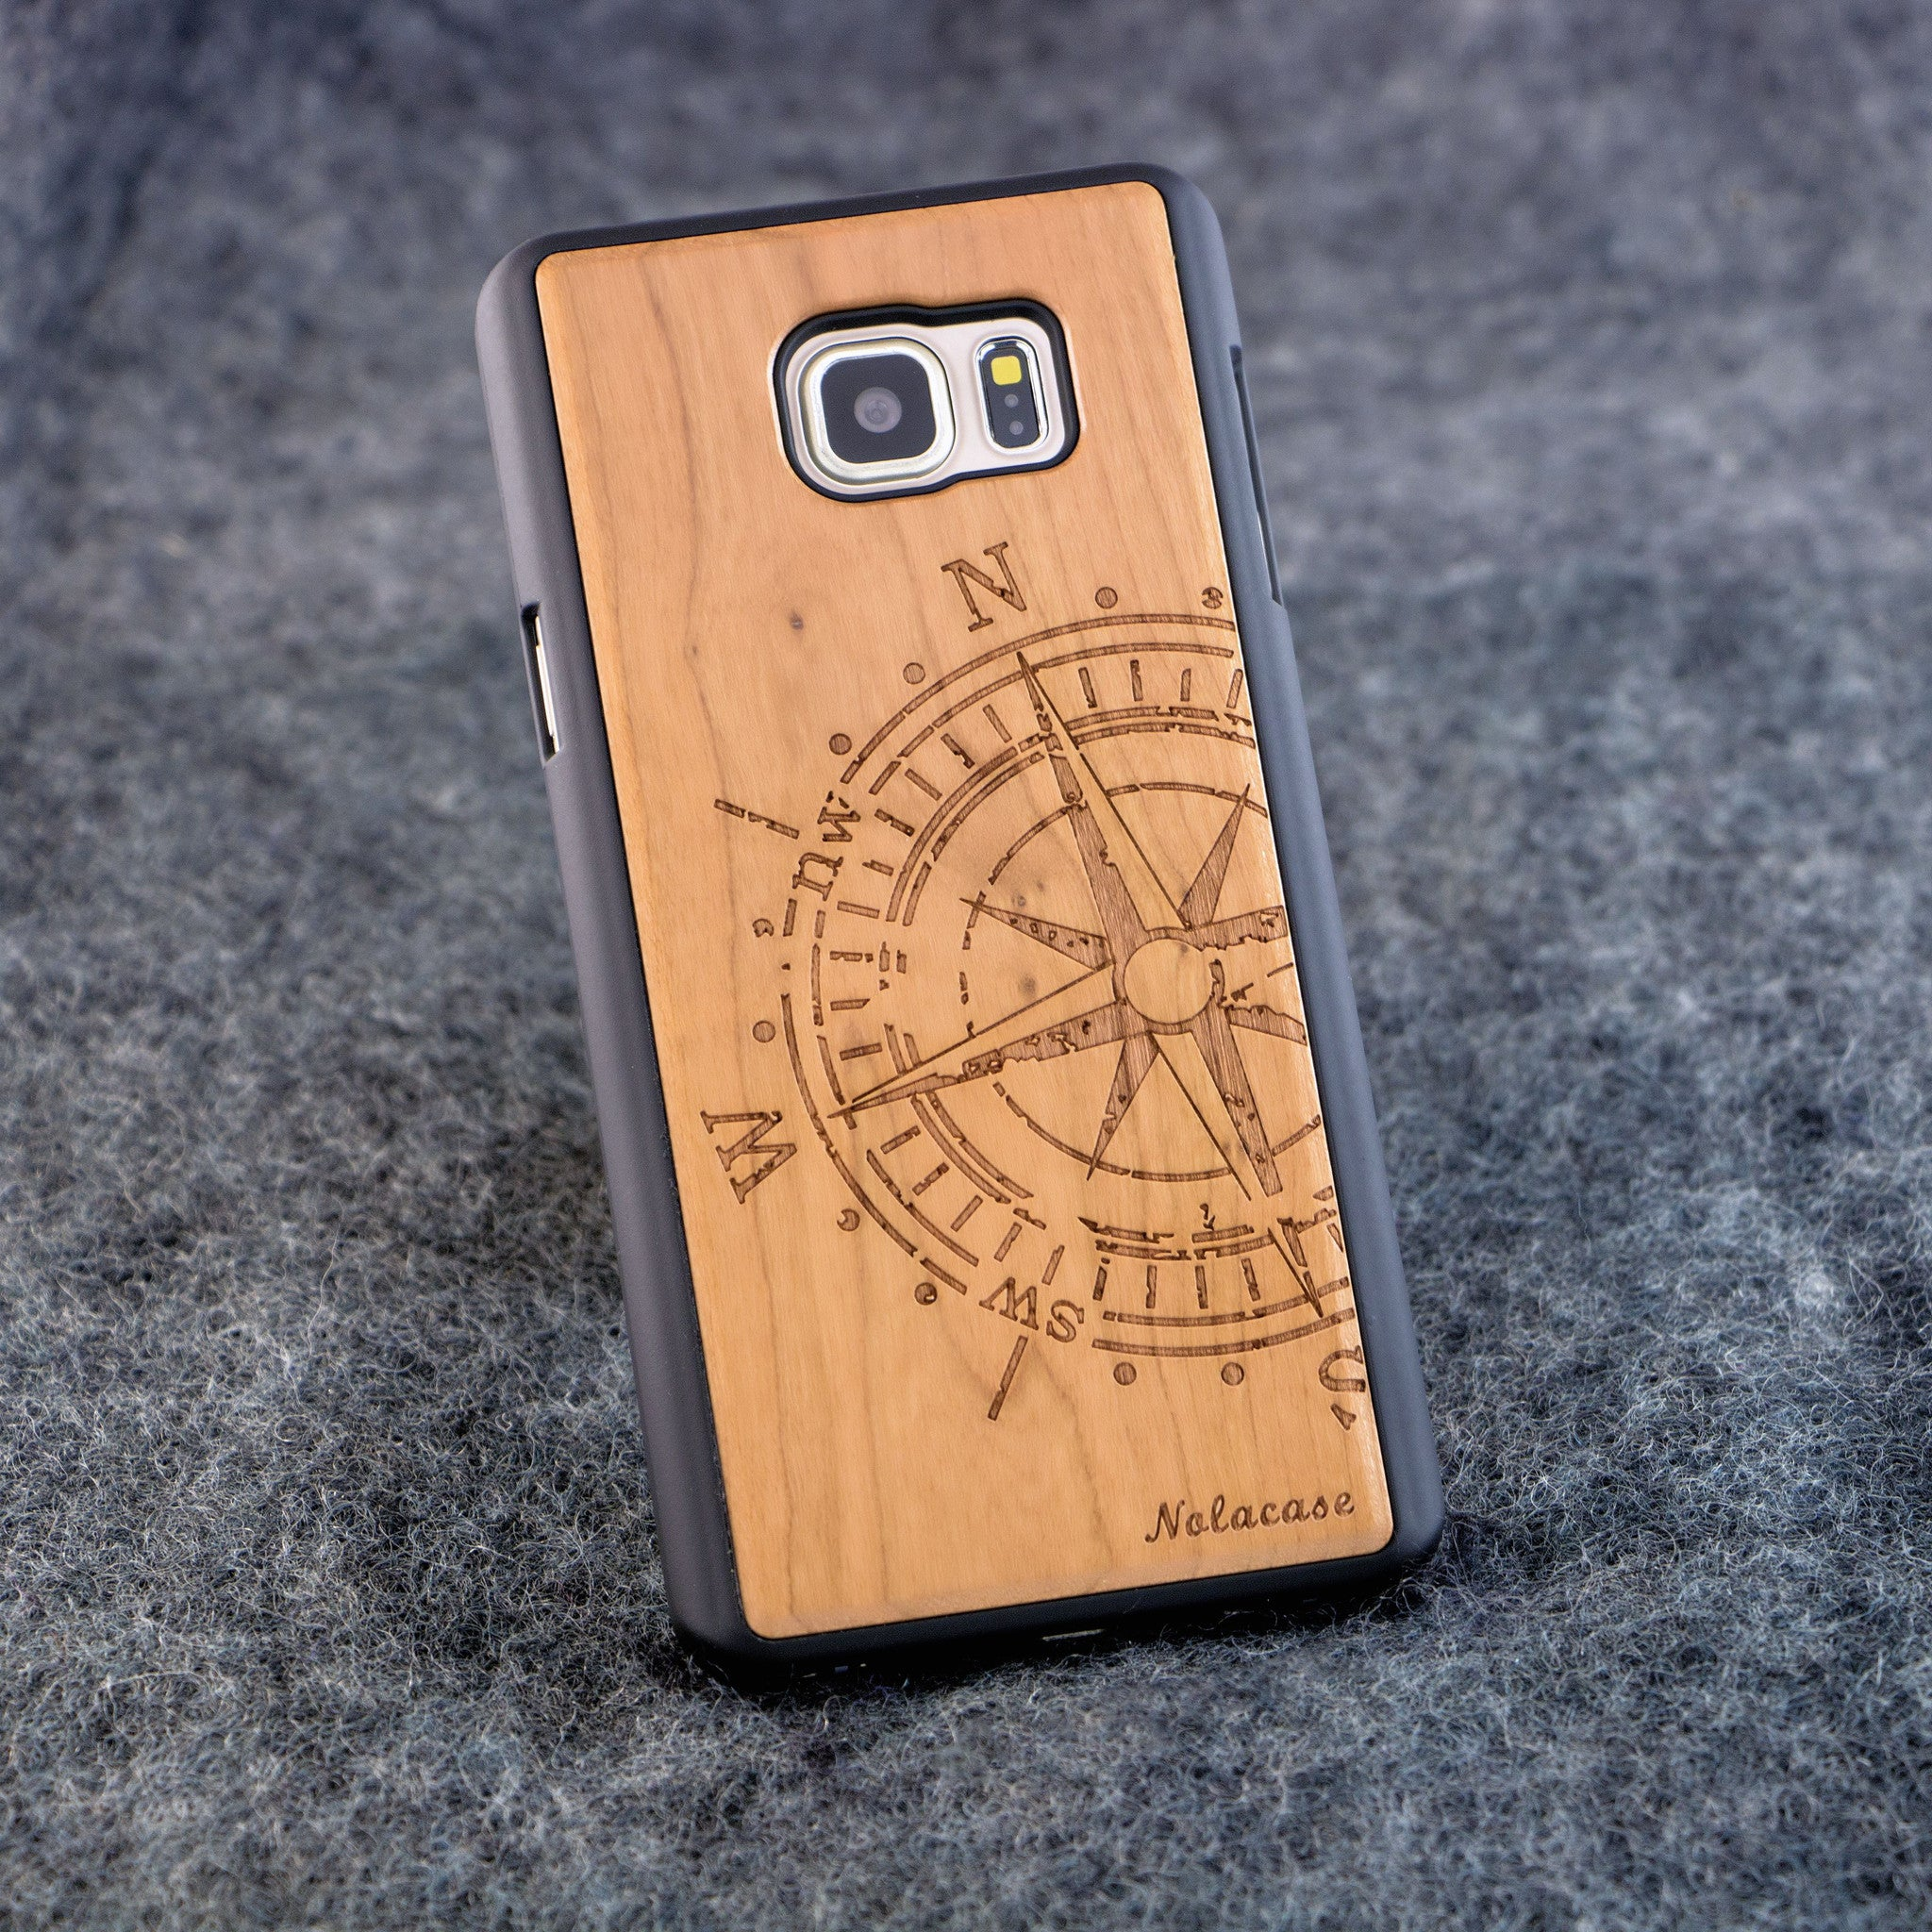 Samsung Note 5 Big Compass Slim Wood Case - NOLACASE